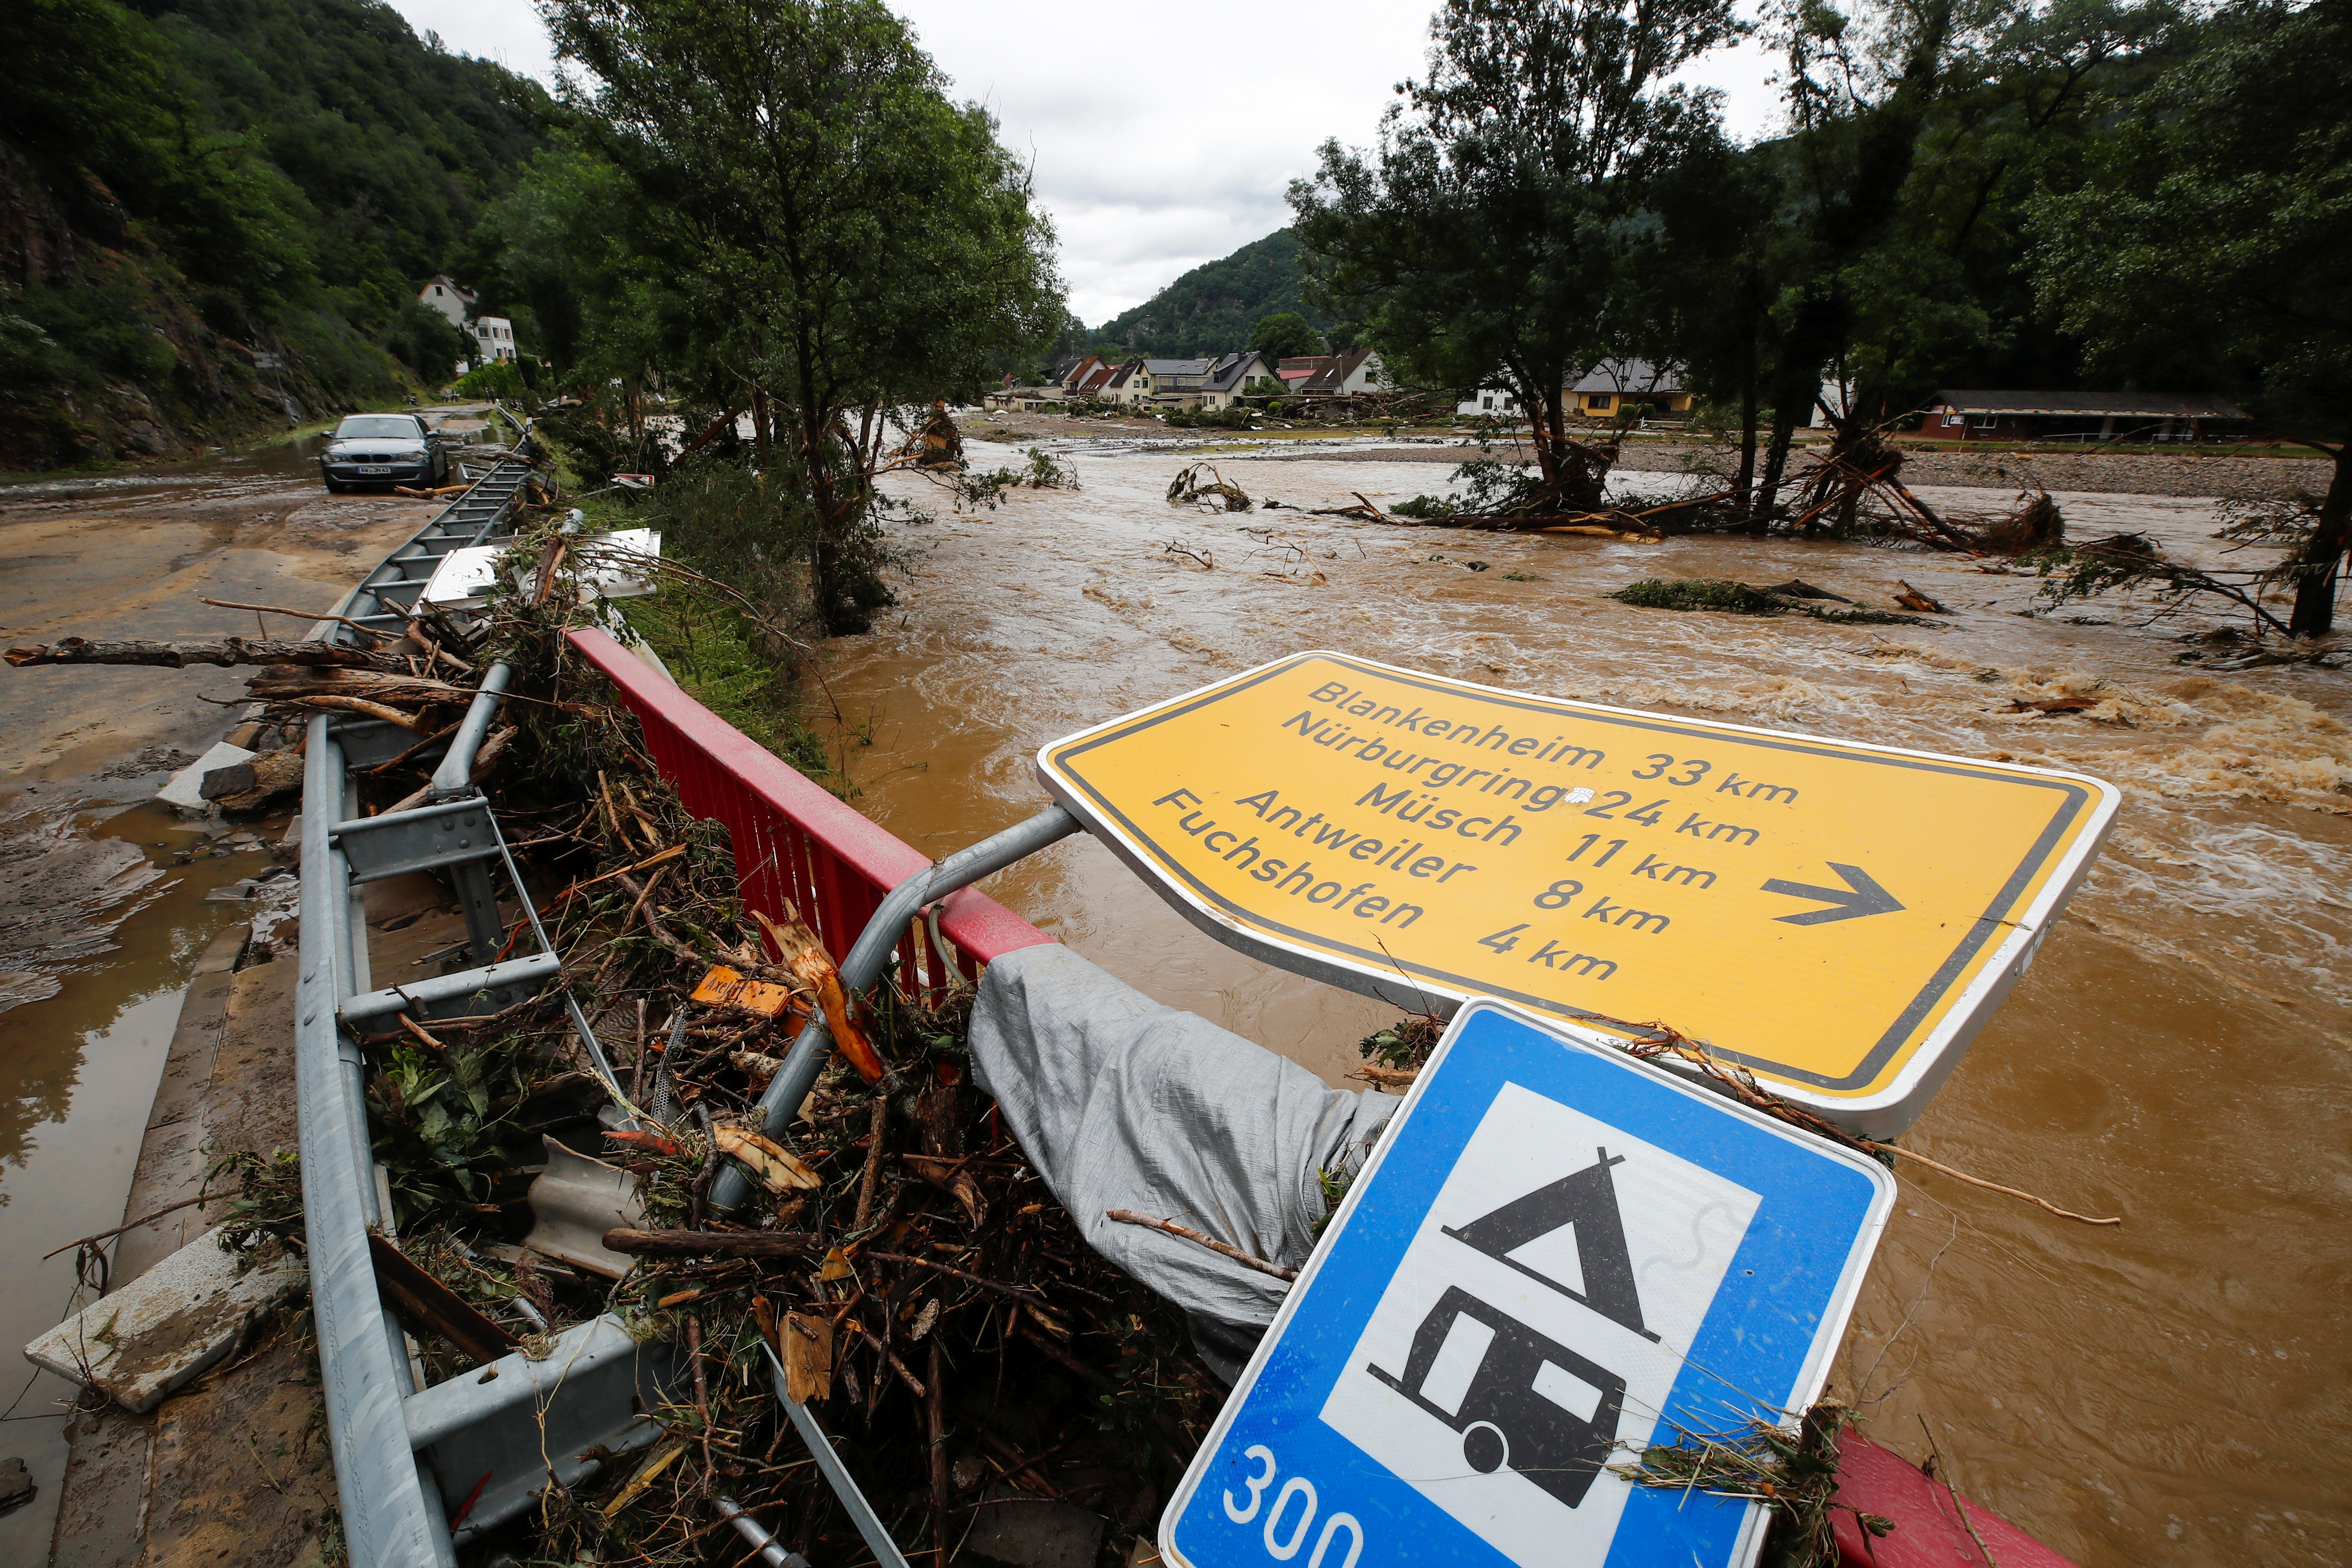 A collapsed sign is seen next to a river at a flood-affected area, following heavy rainfalls, in Schuld, Germany, July 15, 2021. REUTERS/Wolfgang Rattay